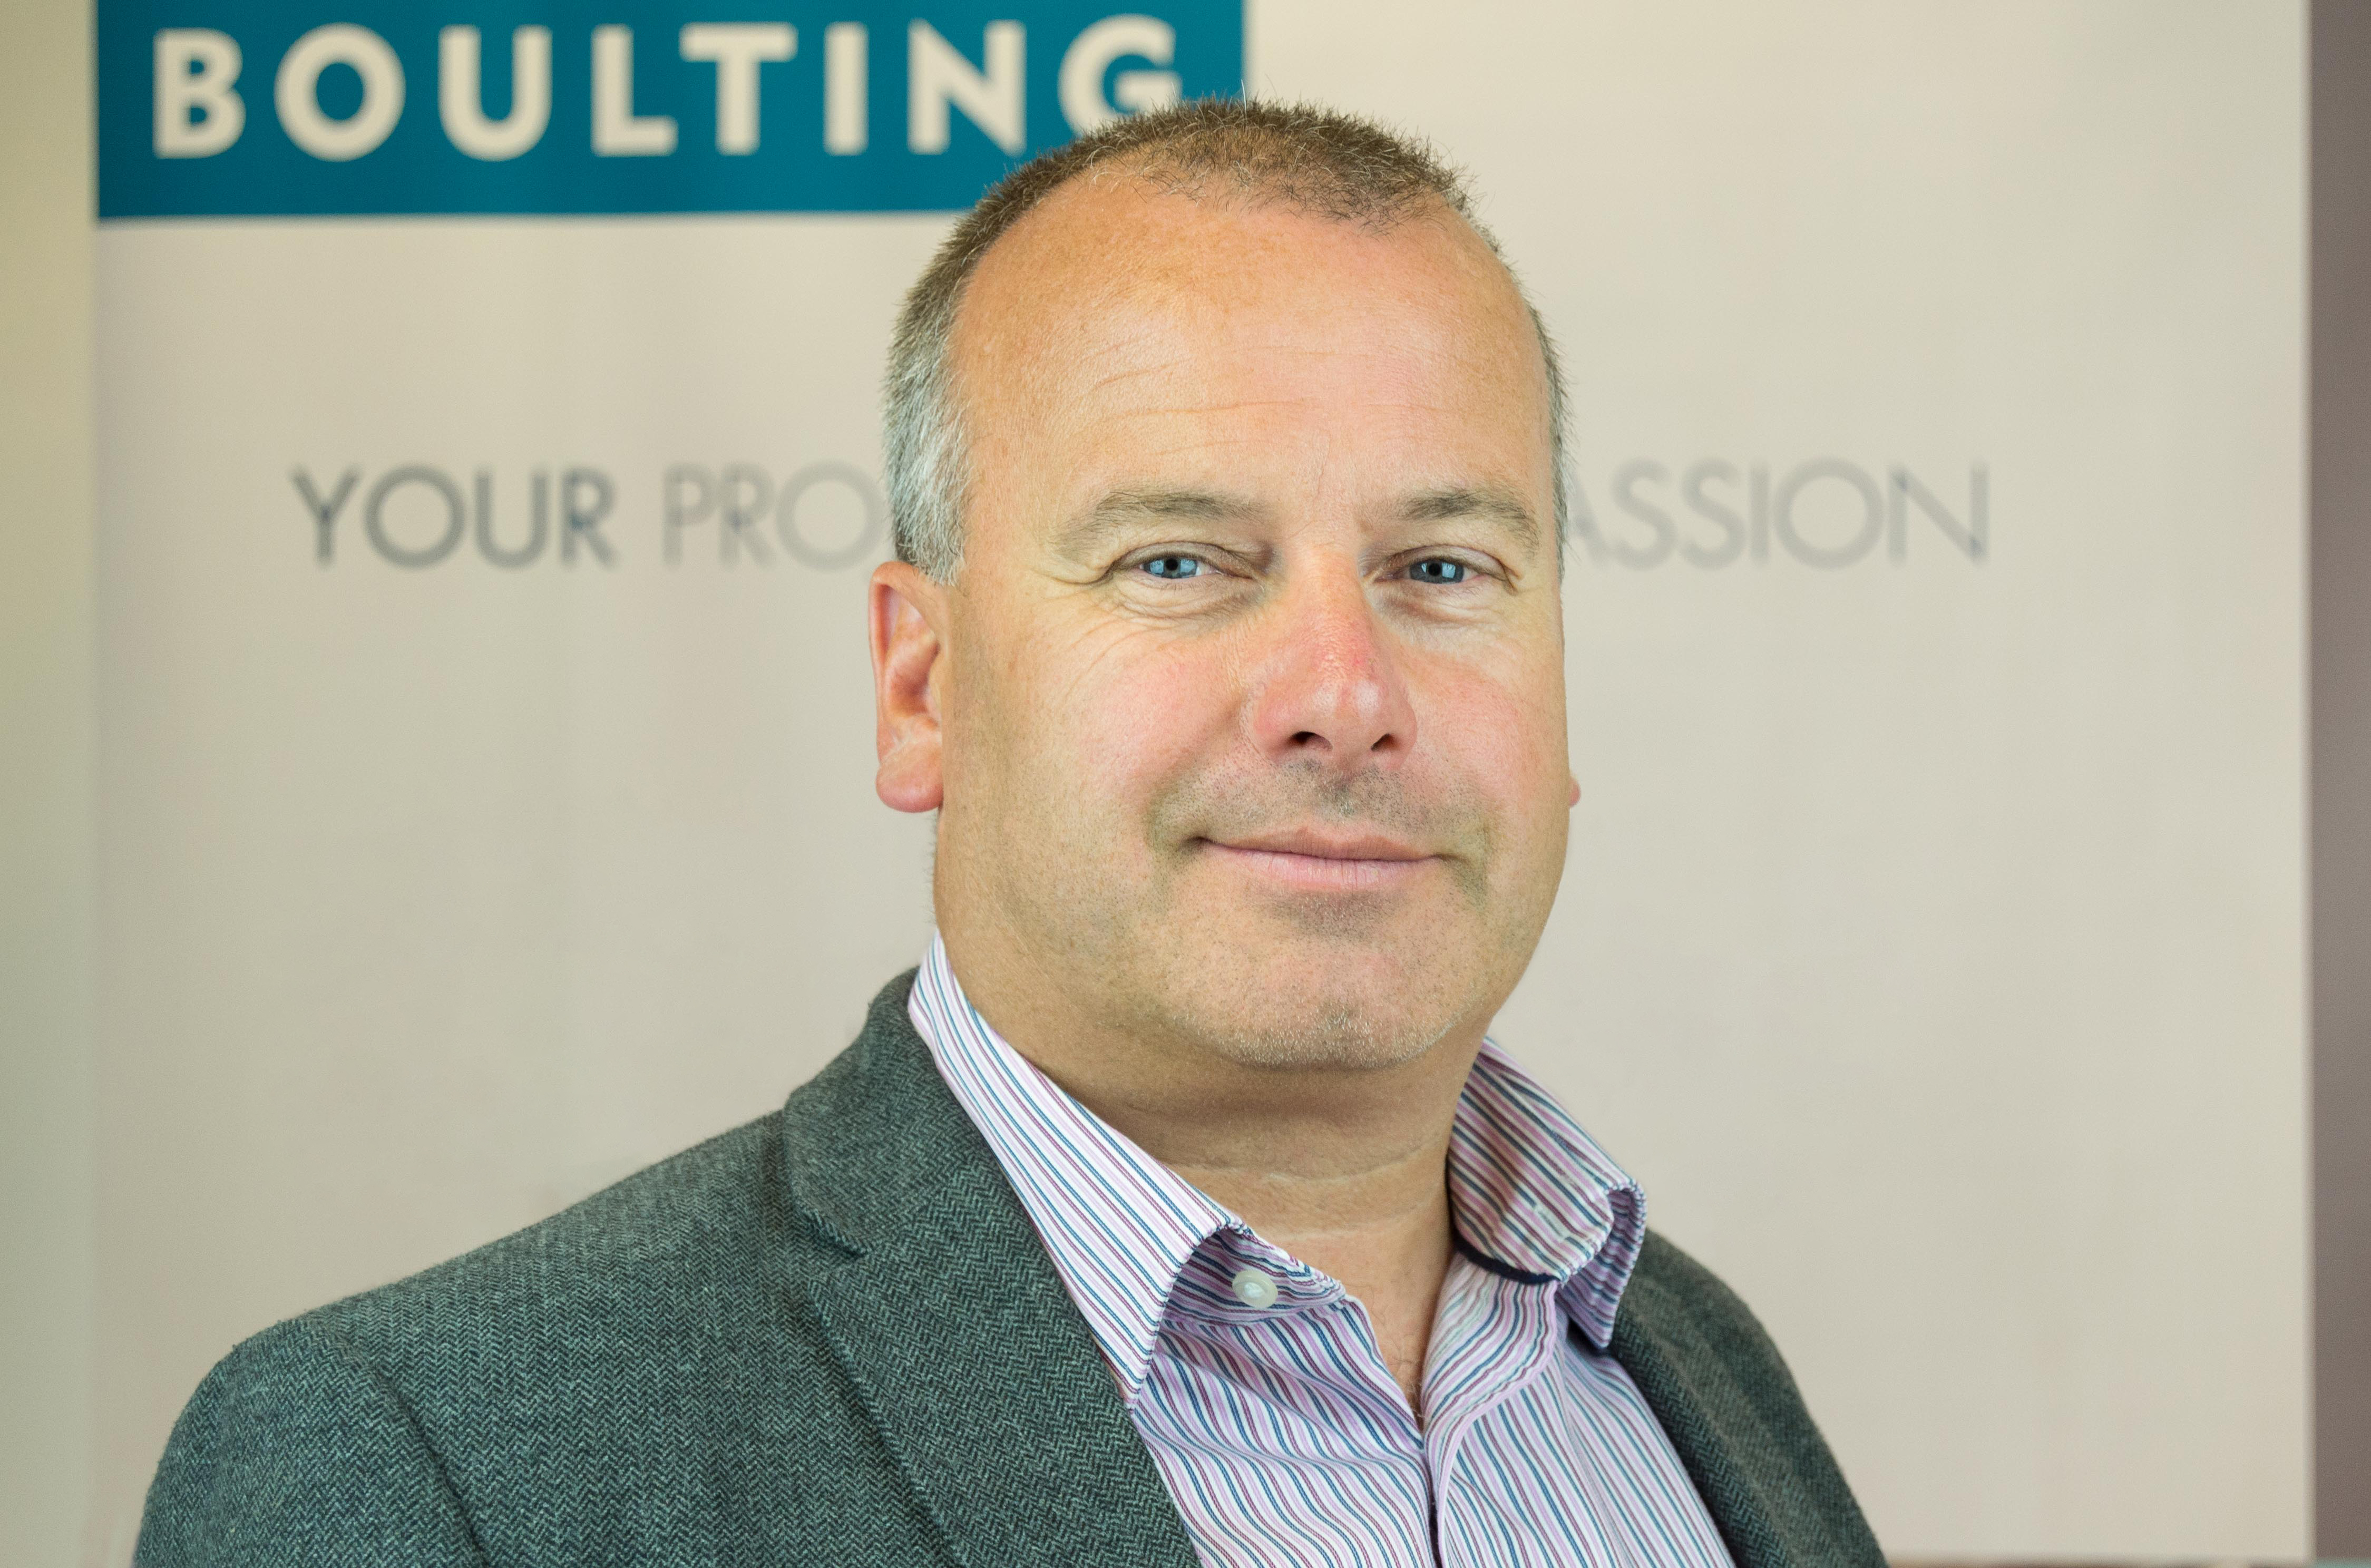 Boulting Strengthens Business Offering with Promotions